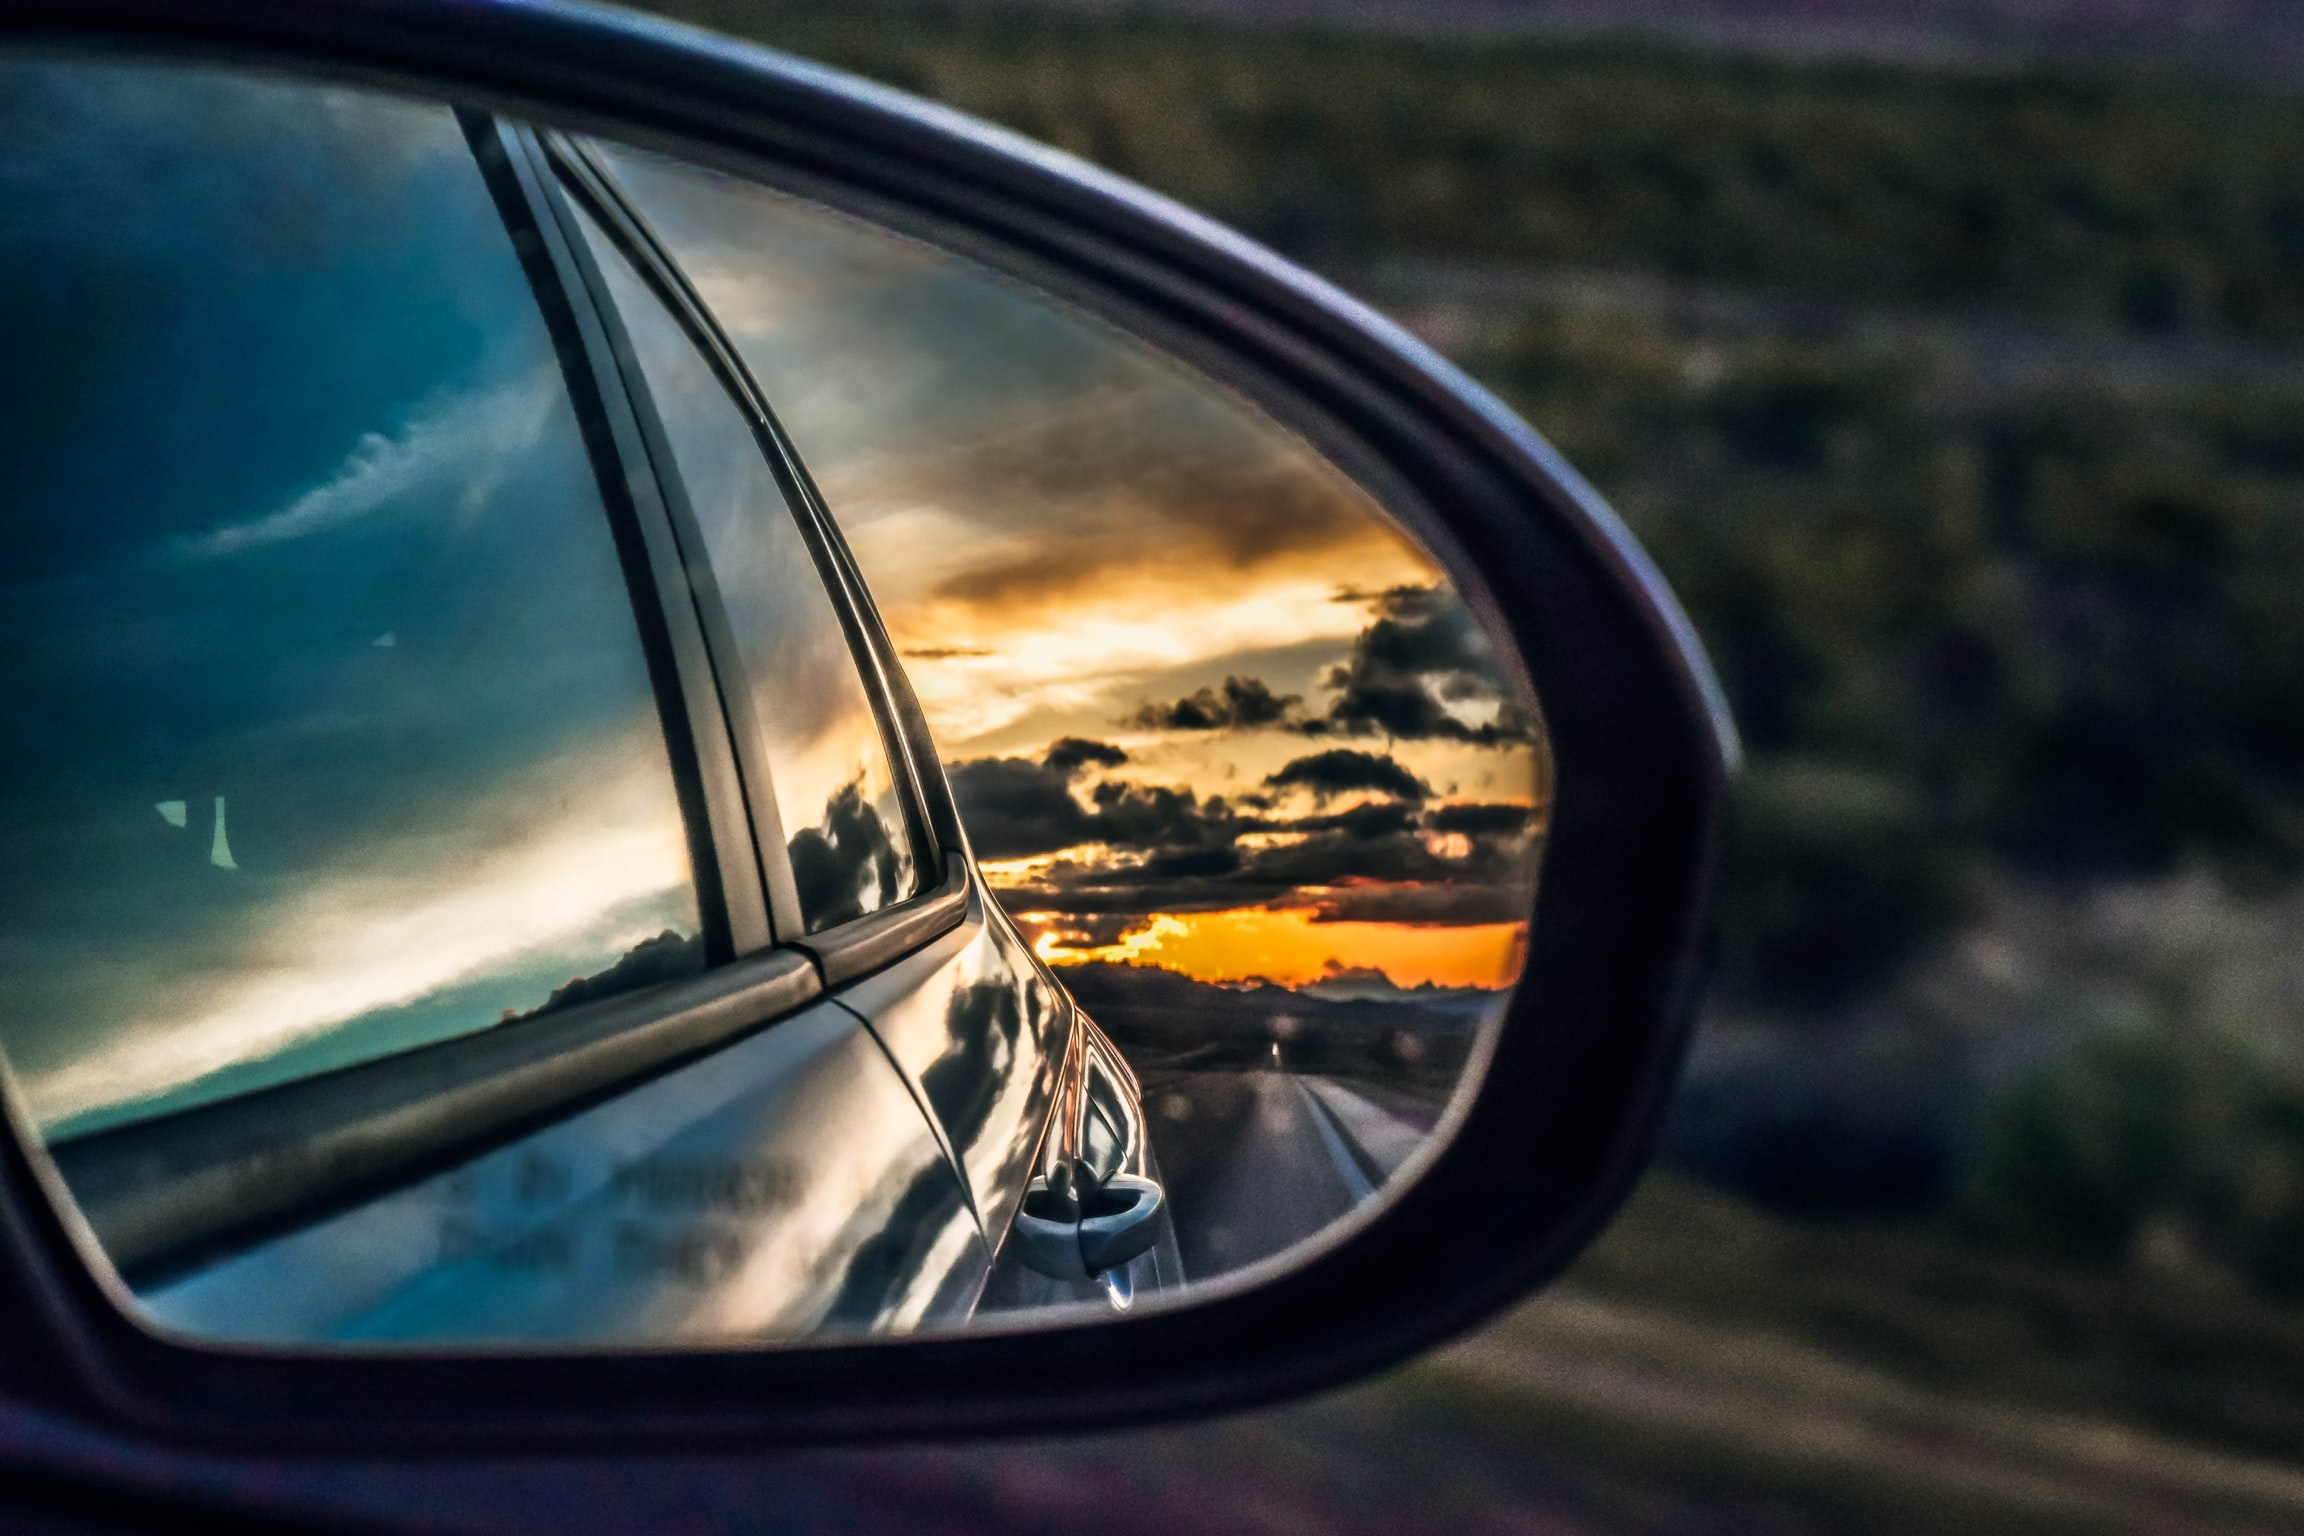 View of the sunset and the clouds from the car on the side view mirror